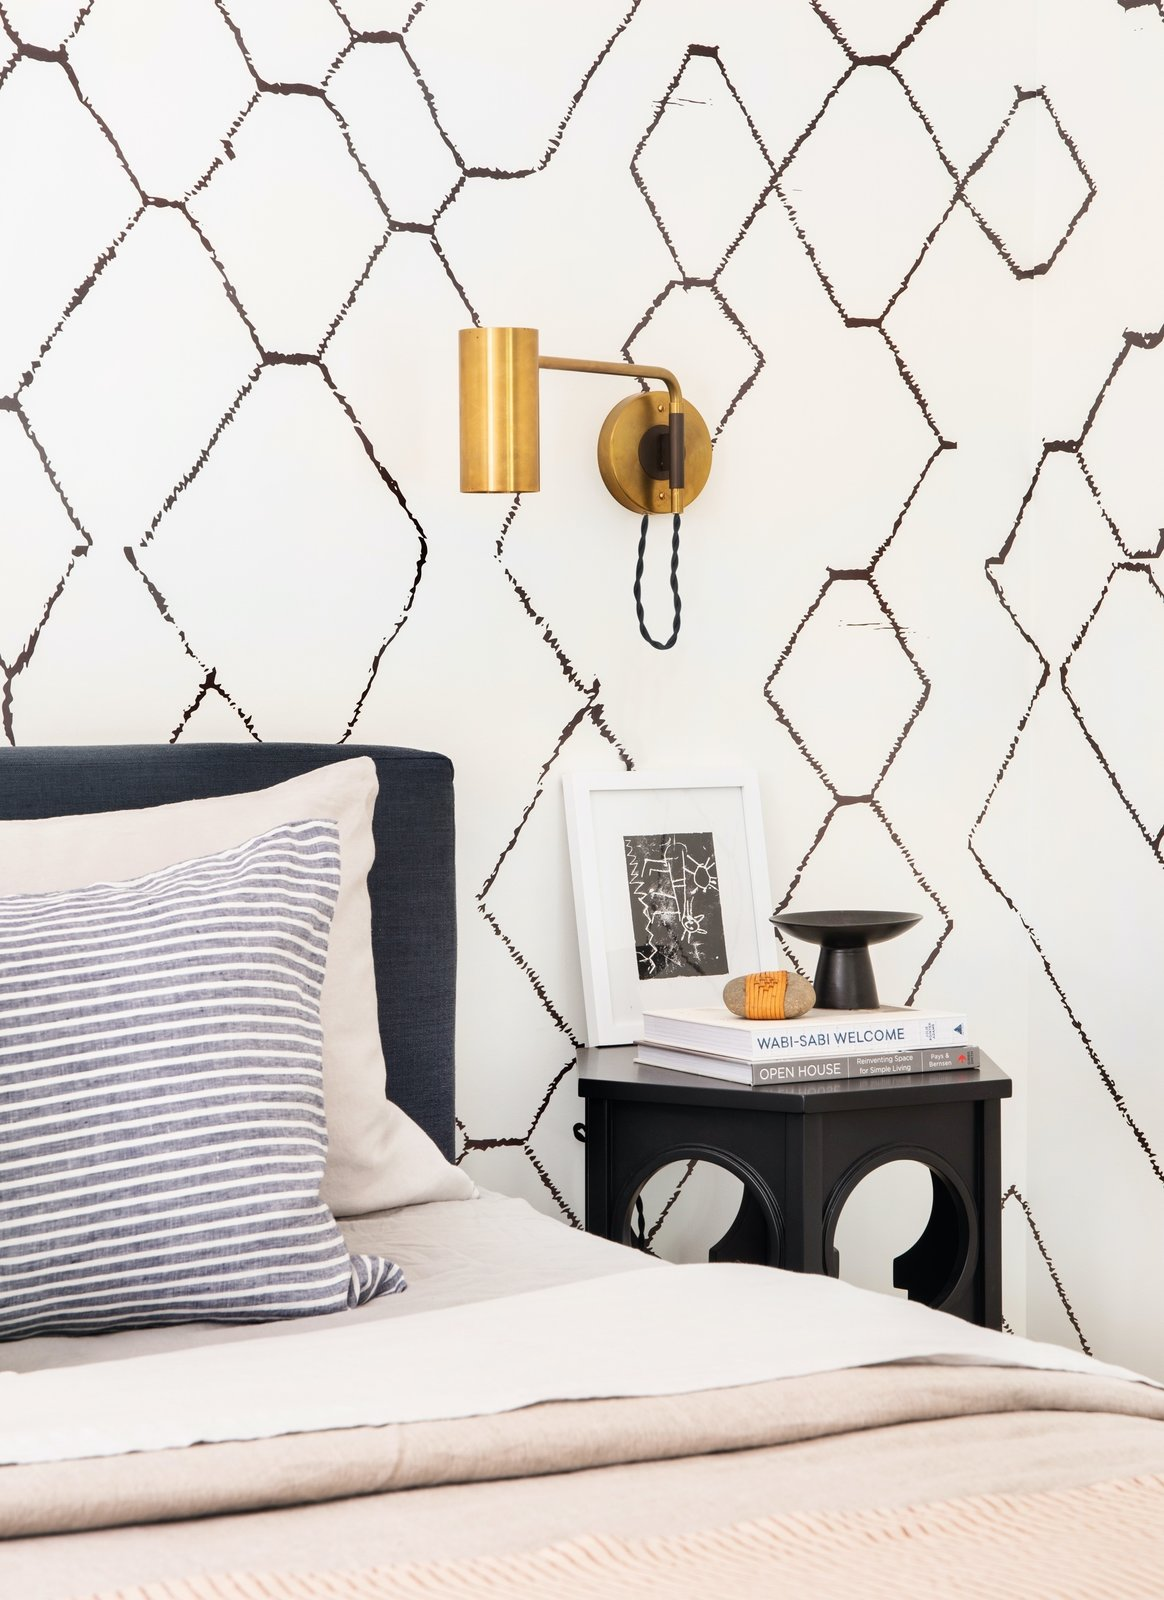 A Schoolhouse Electric brass sconce contrasts with a monochromatic, patterned palette in this bedroom designed by Ginny Macdonald.  Photo 4 of 12 in How Much Should You Spend on a Wall Sconce?